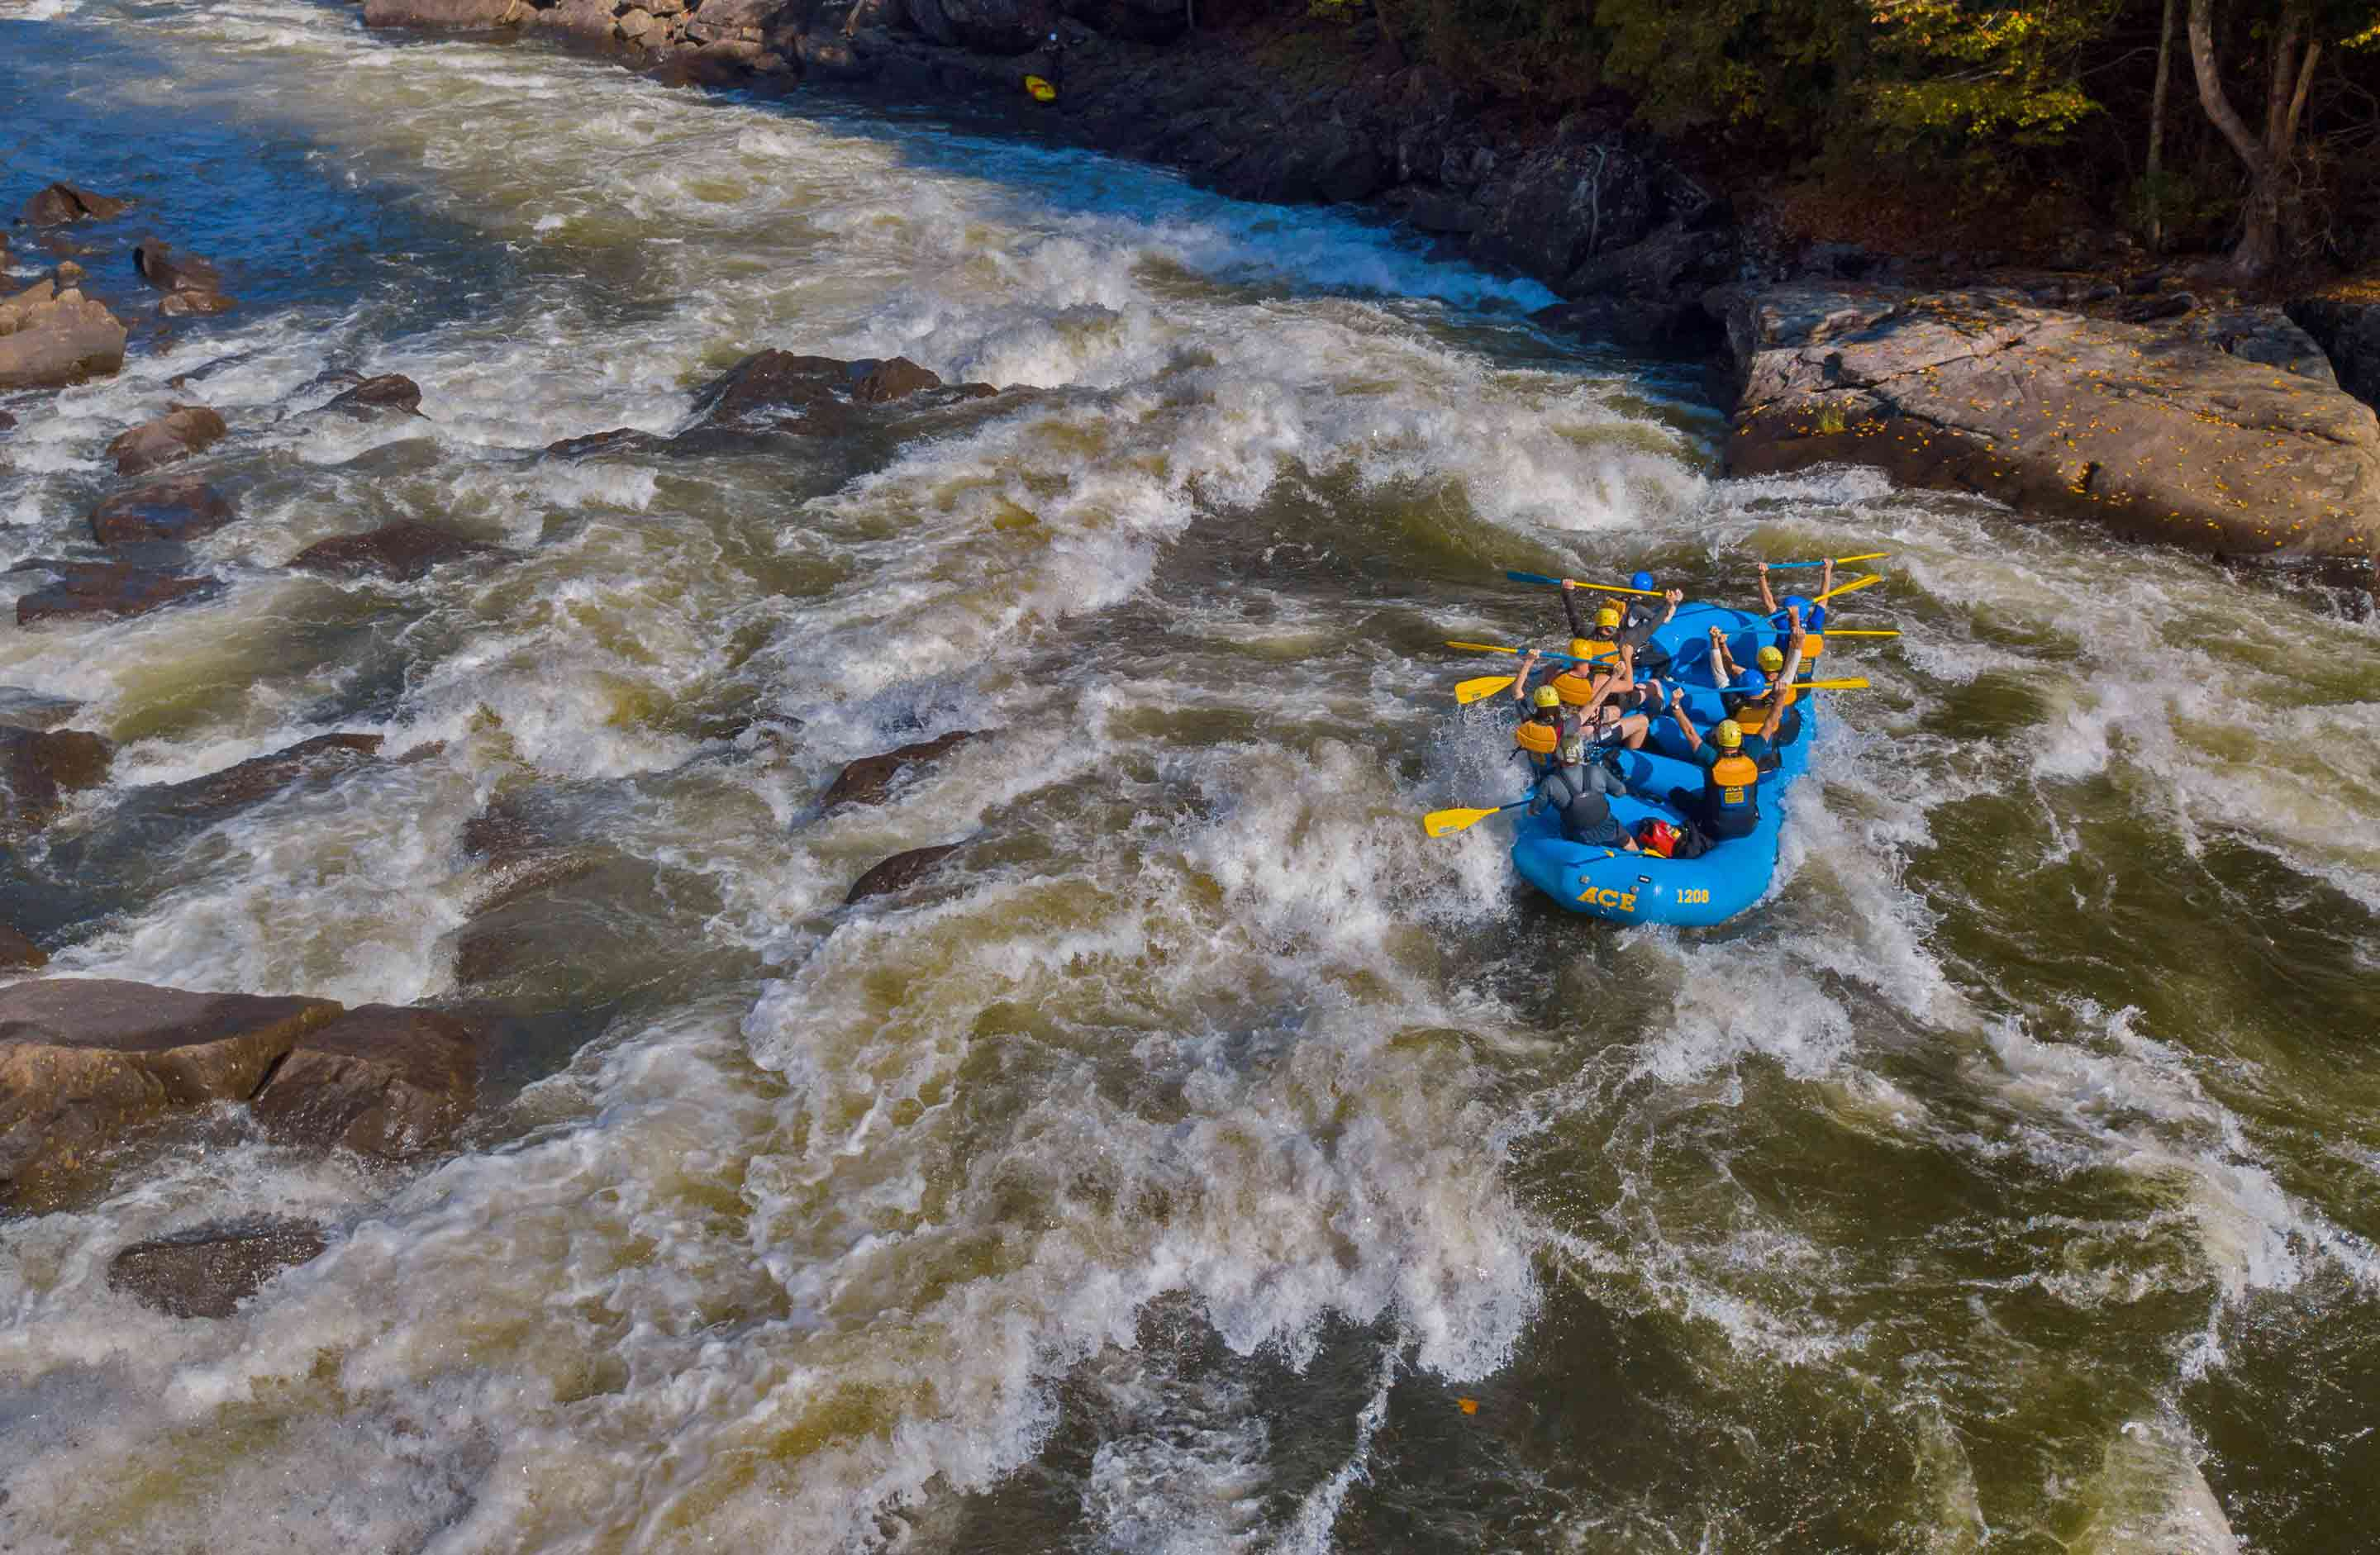 A 6 person raft appears tiny in the massive waves of the Upper Gauley on a Gauley River rafting trip with ACE Adventure Resort.